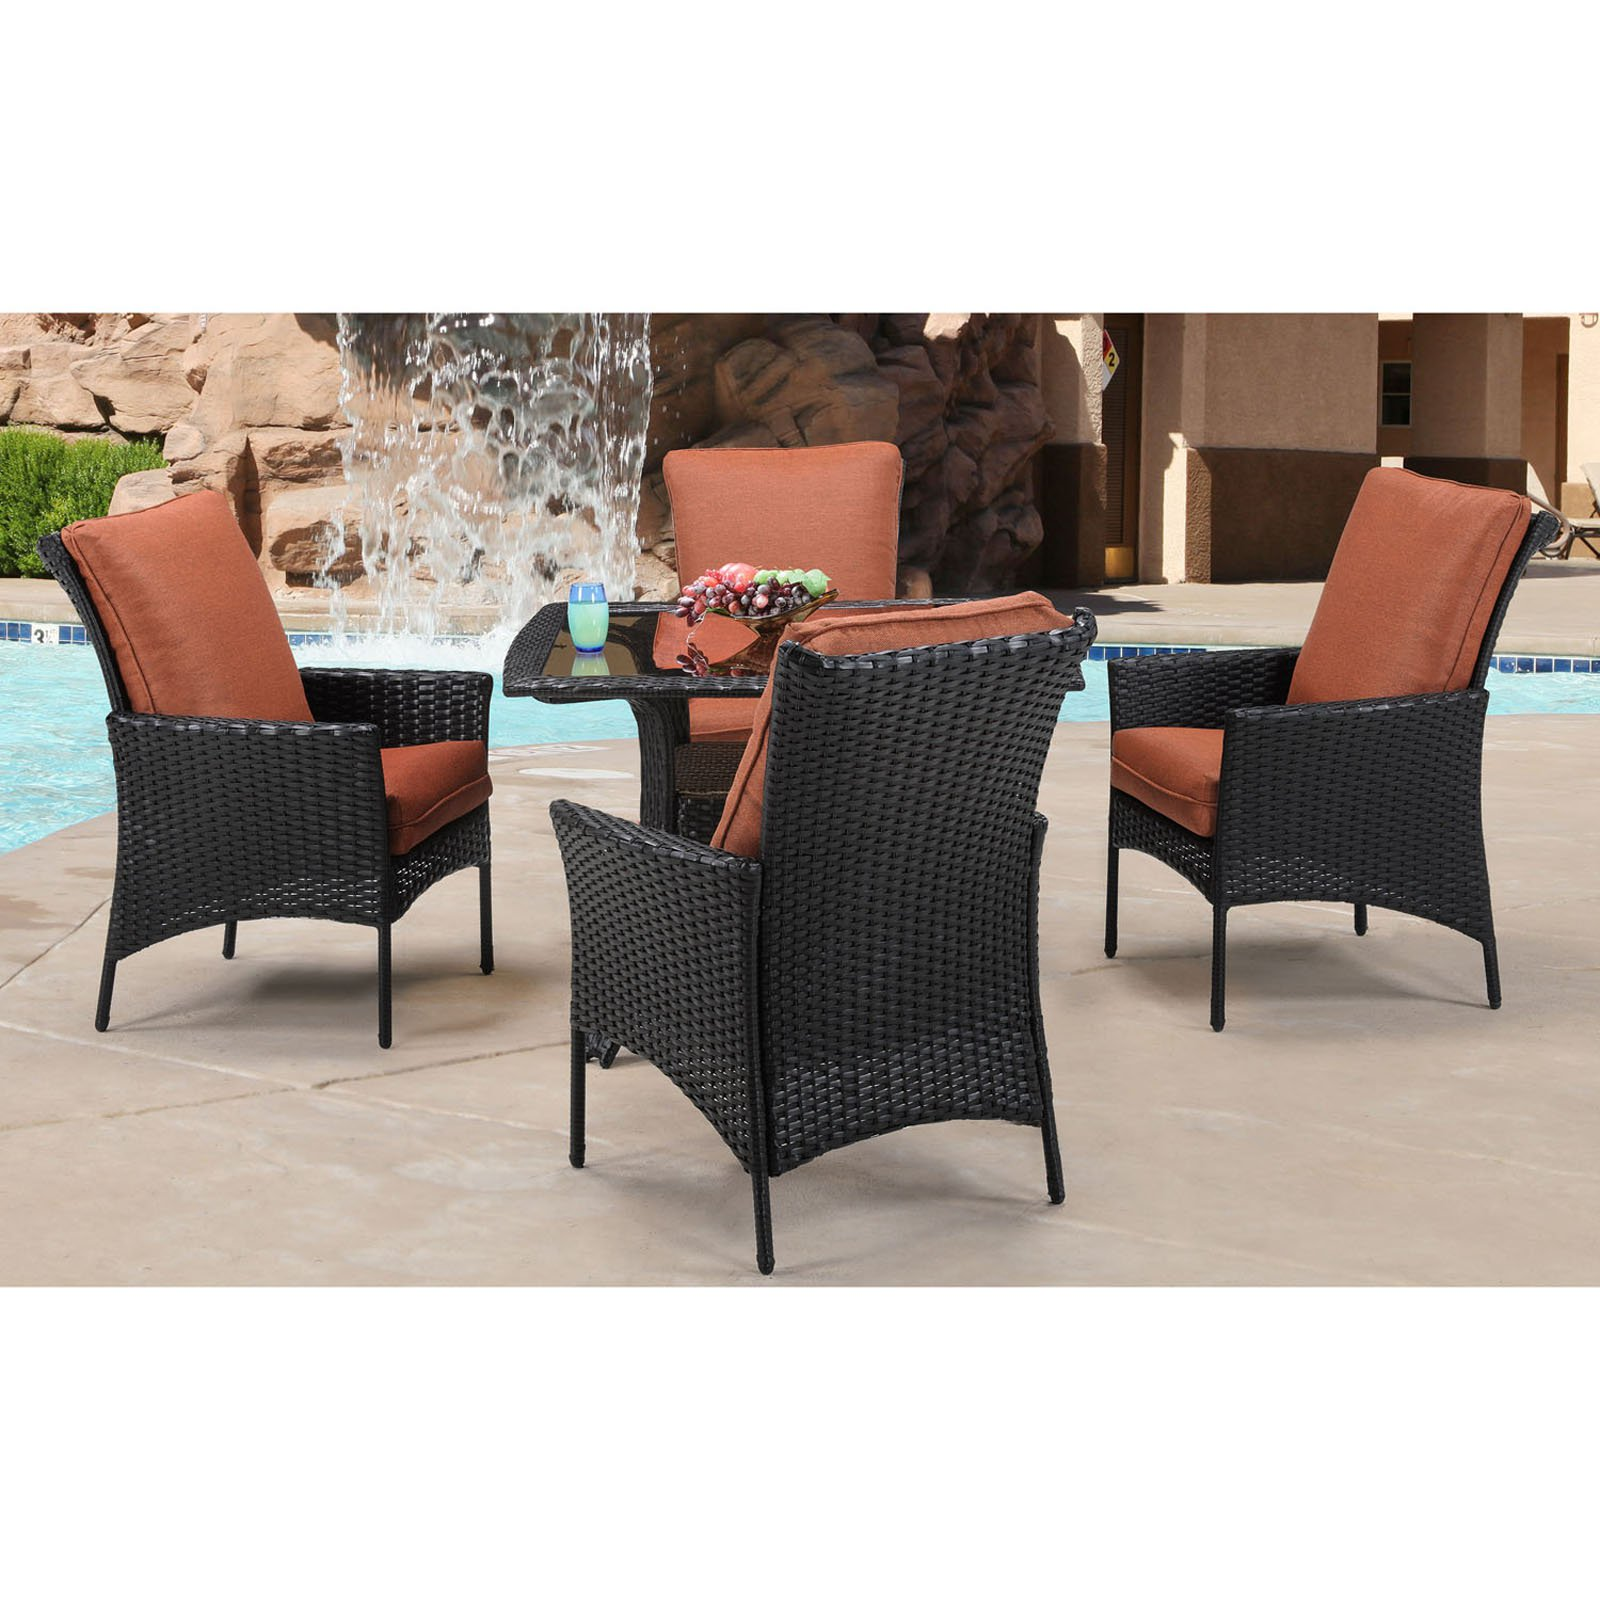 Hanover STRALDN5PCSQ Strathmere Allure 5-Piece Steel Framed Polyethylene Wicker